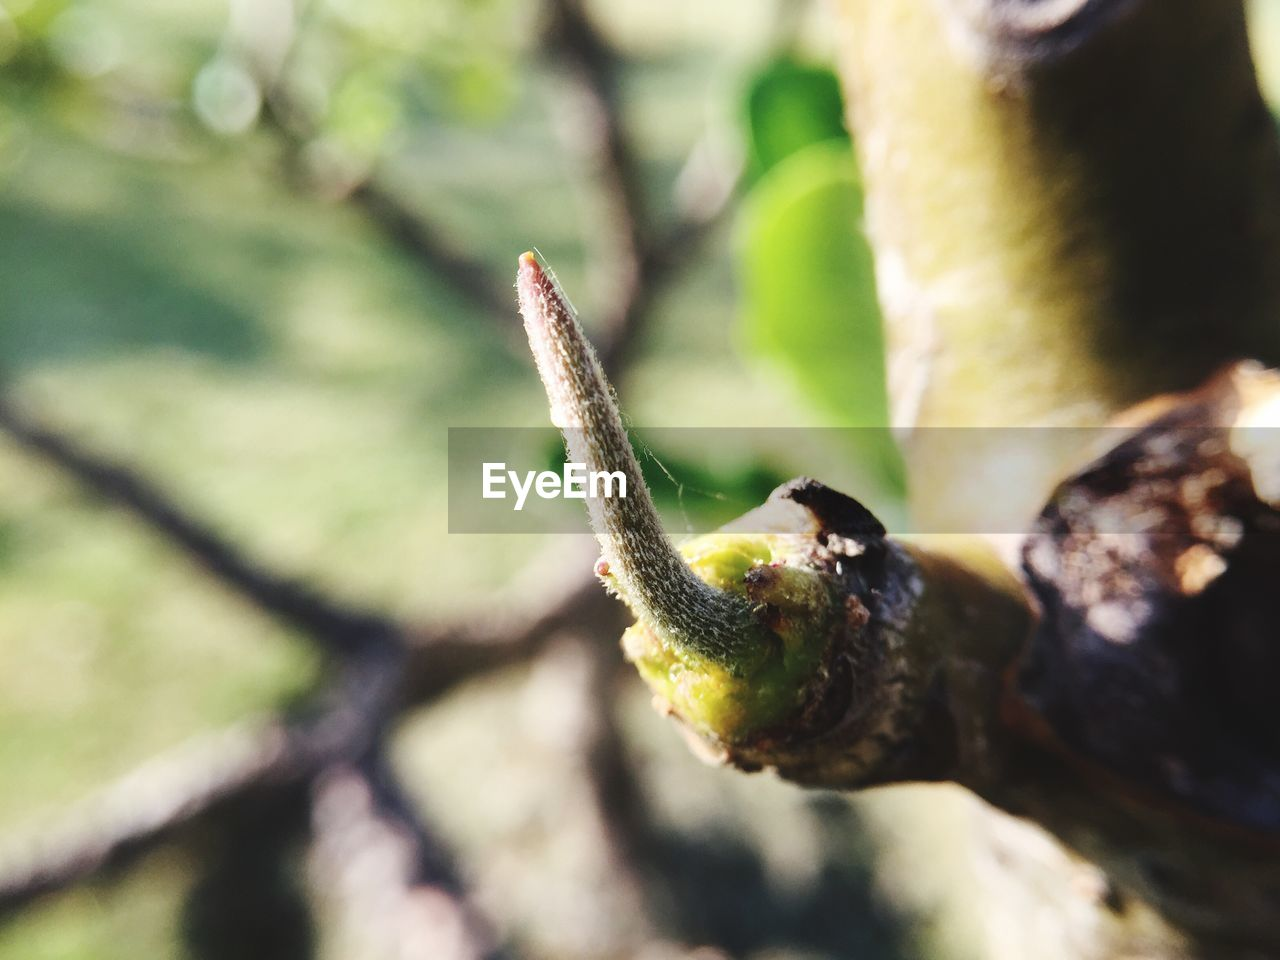 nature, growth, day, close-up, outdoors, focus on foreground, plant, no people, beauty in nature